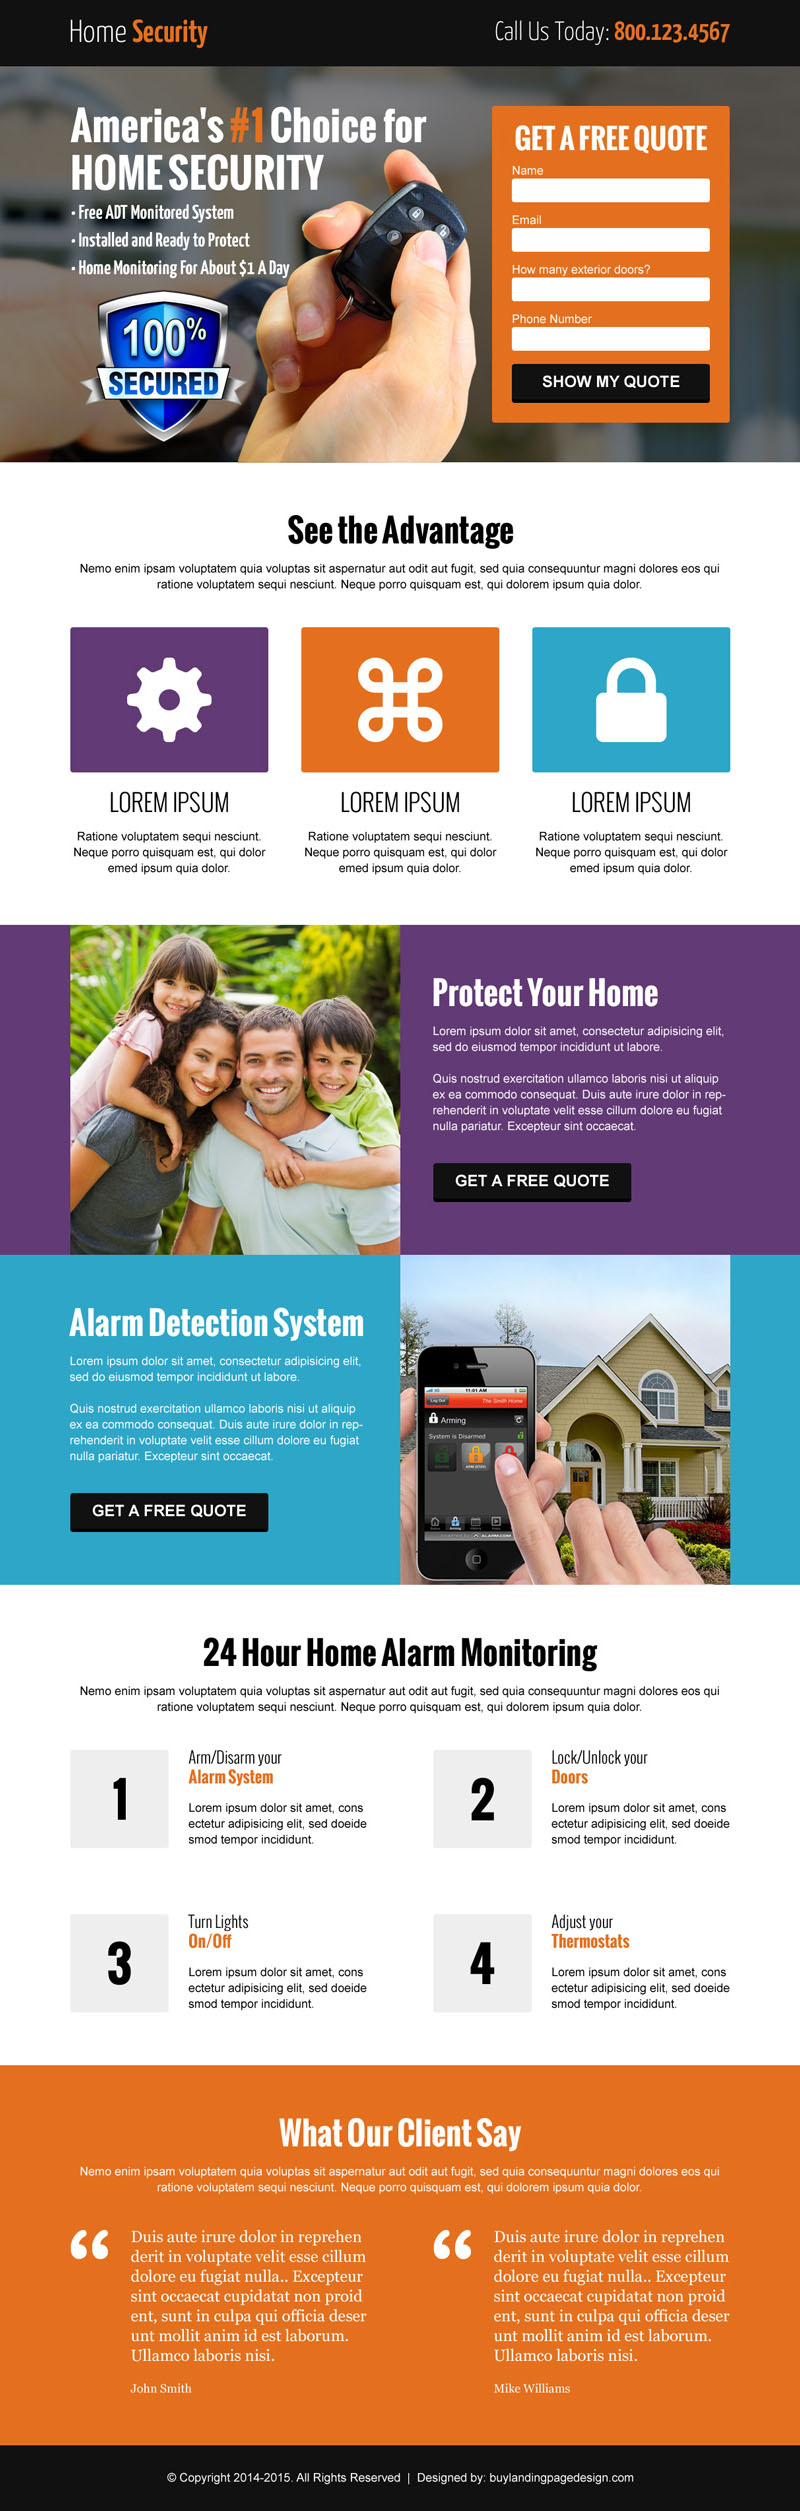 Landing Page Designs For Capture Leads And Increase Sales   Best Home Page  Design